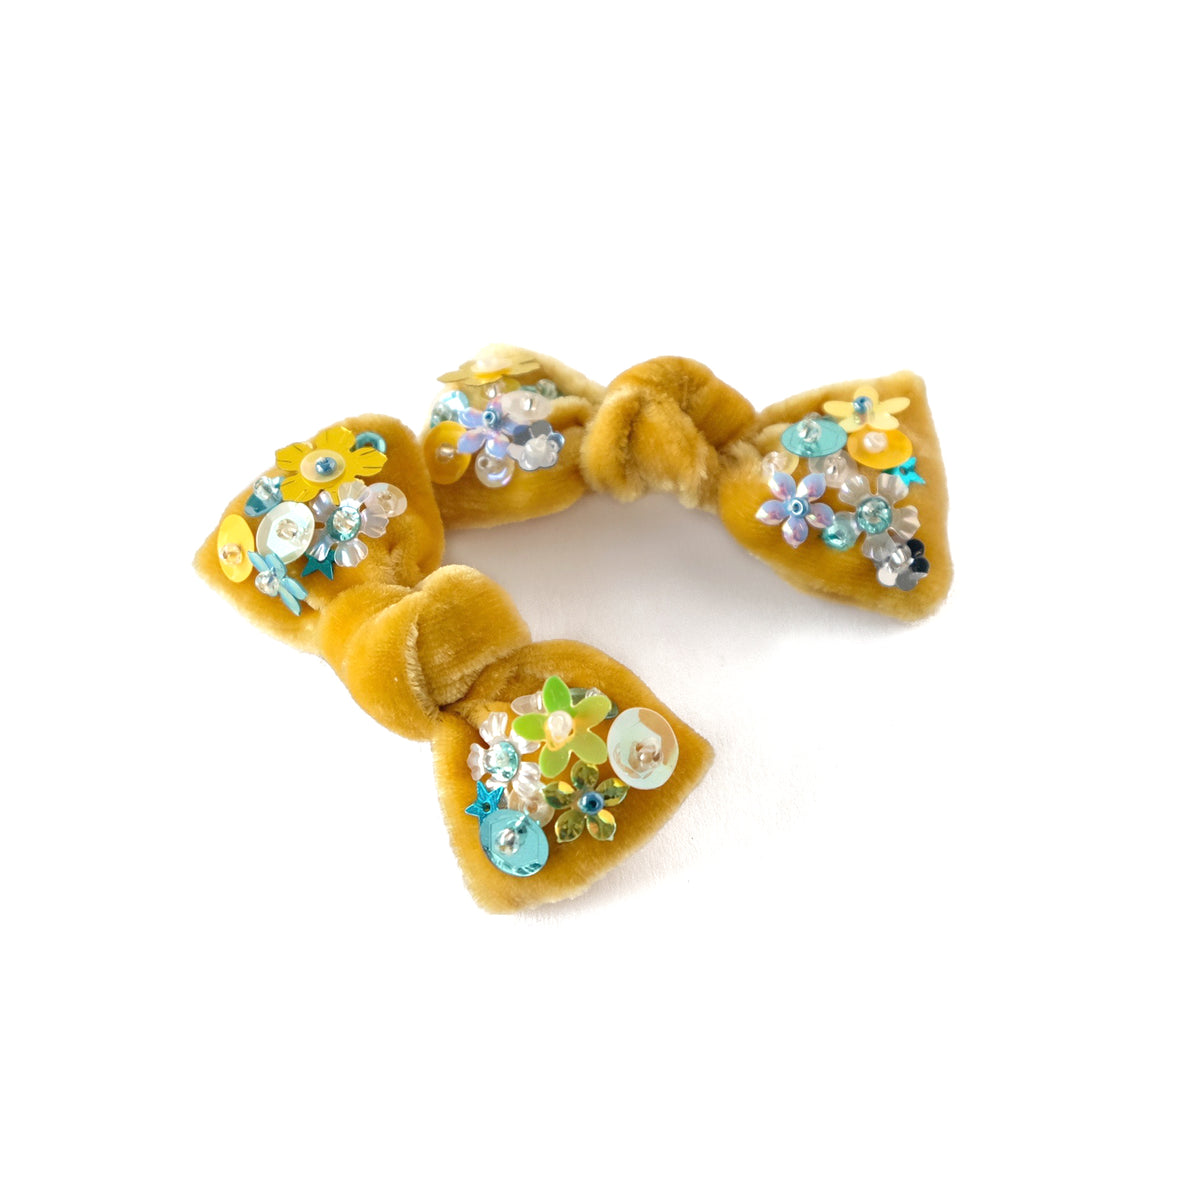 Hair bow with sequin, pigtail set, in honey yellow colored velvet.